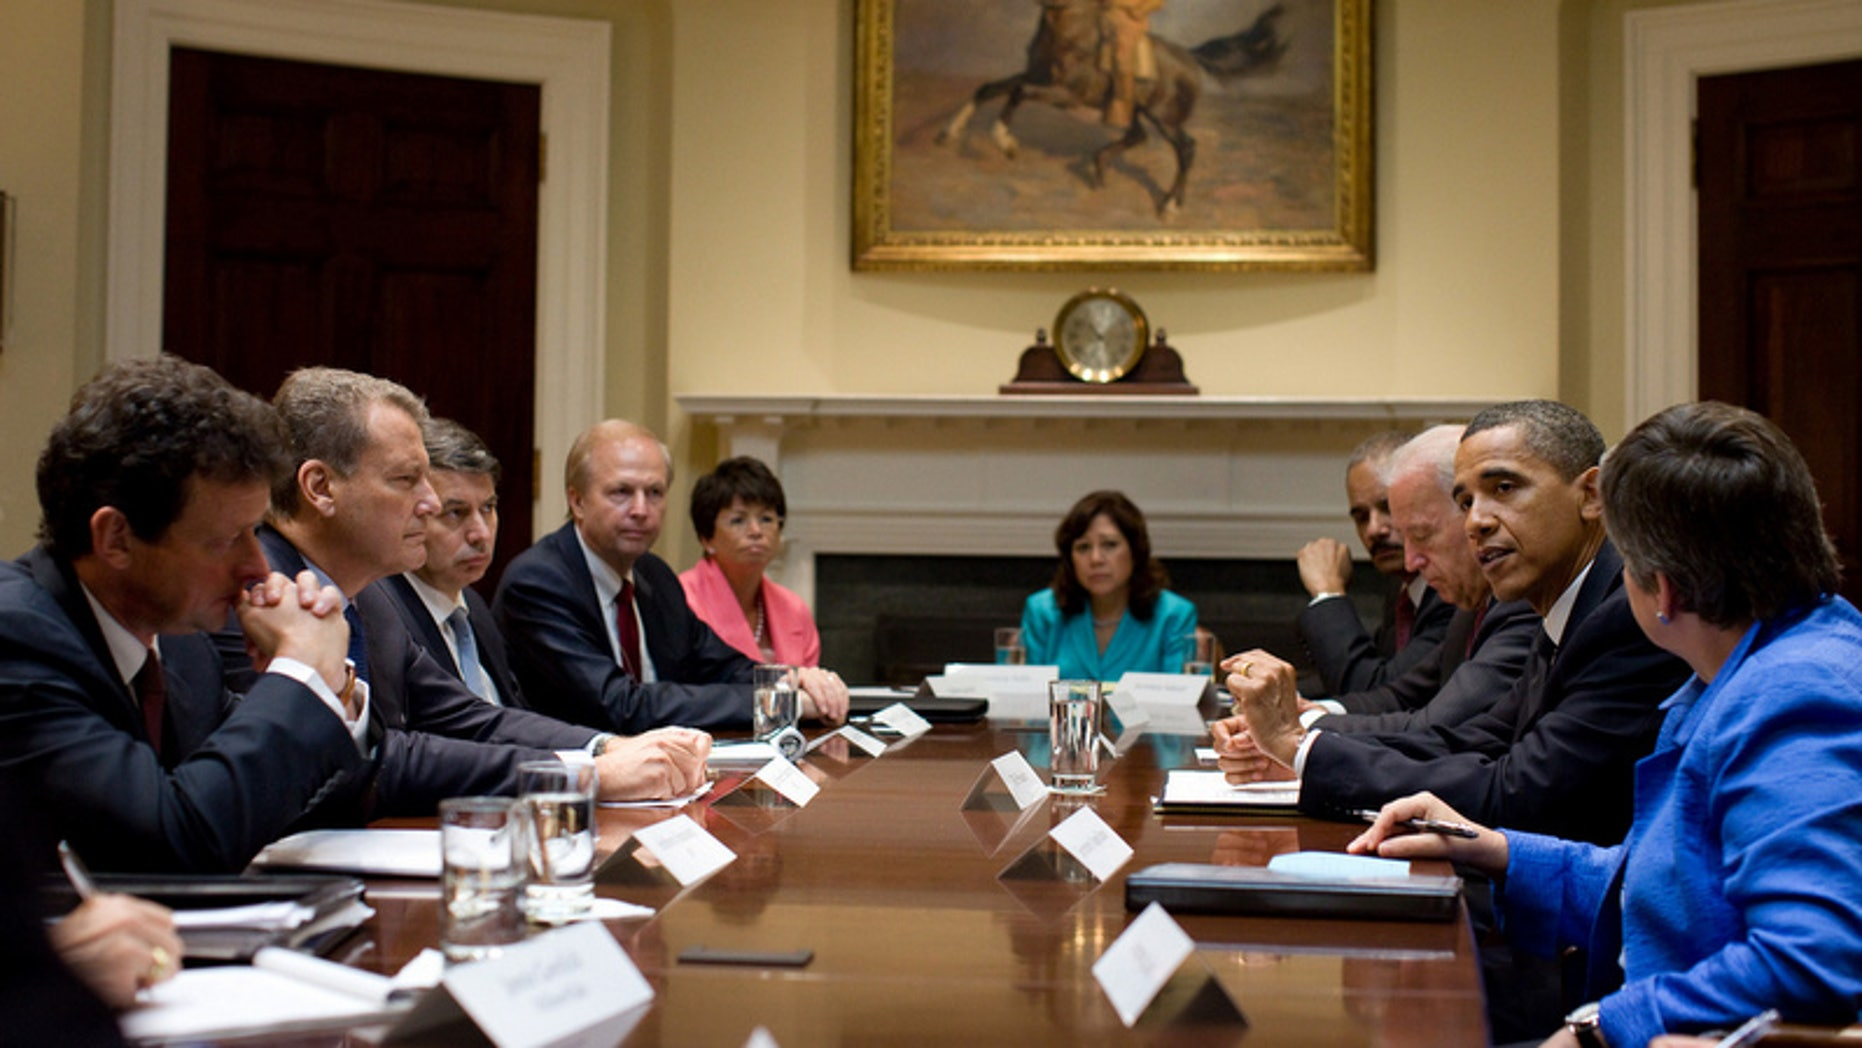 Wednesday: President Obama and Vice President Biden meet with BP executives in the Roosevelt Room of the White House to discuss the BP oil spill in the Gulf of Mexico. Pictured, from left, are BP CEO Tony Hayward, BP Chairman Carl-Henric Svanberg, BP General Counsel Rupert Bondy, BP Managing Director Robert Dudley, Senior Advisor Valerie Jarrett, Labor Secretary Hilda Solis, Attorney General Eric Holder, and Homeland Security Secretary Janet Napolitano. (Official White House Photo by Pete Souza)